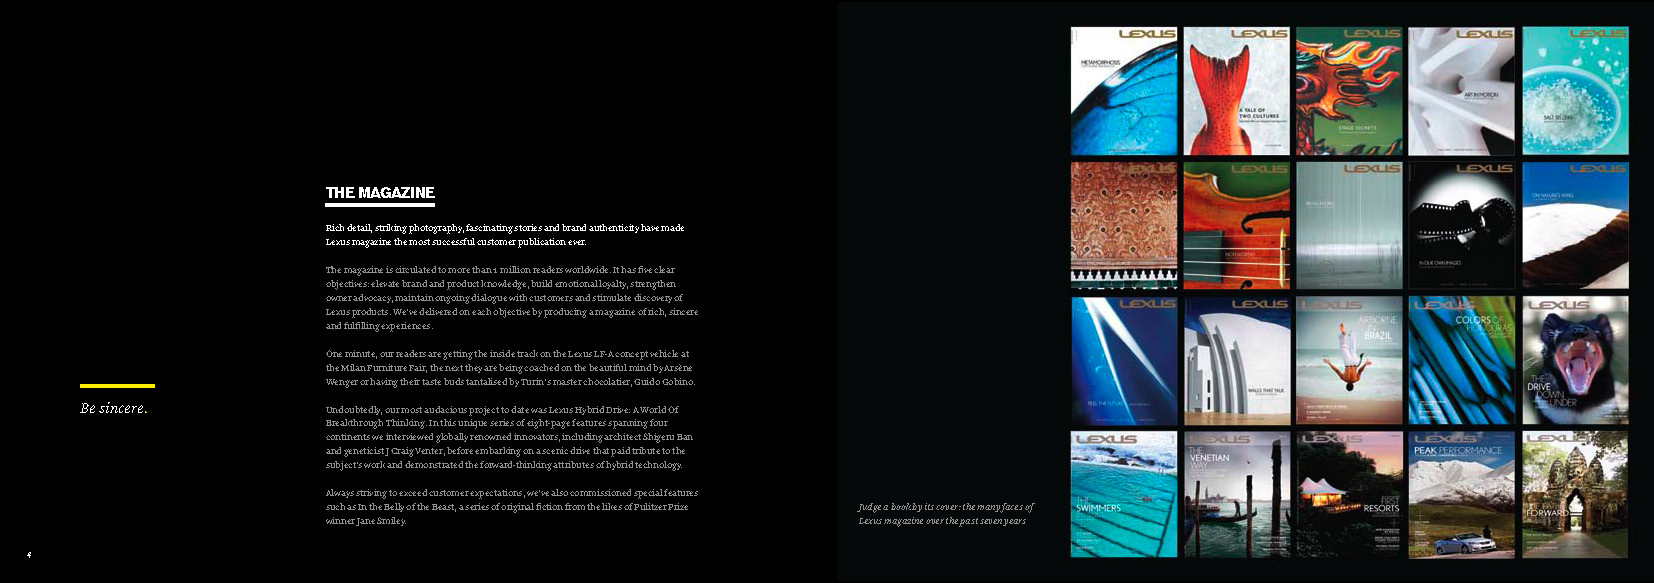 Lexus-case-study-story-magazine-covers